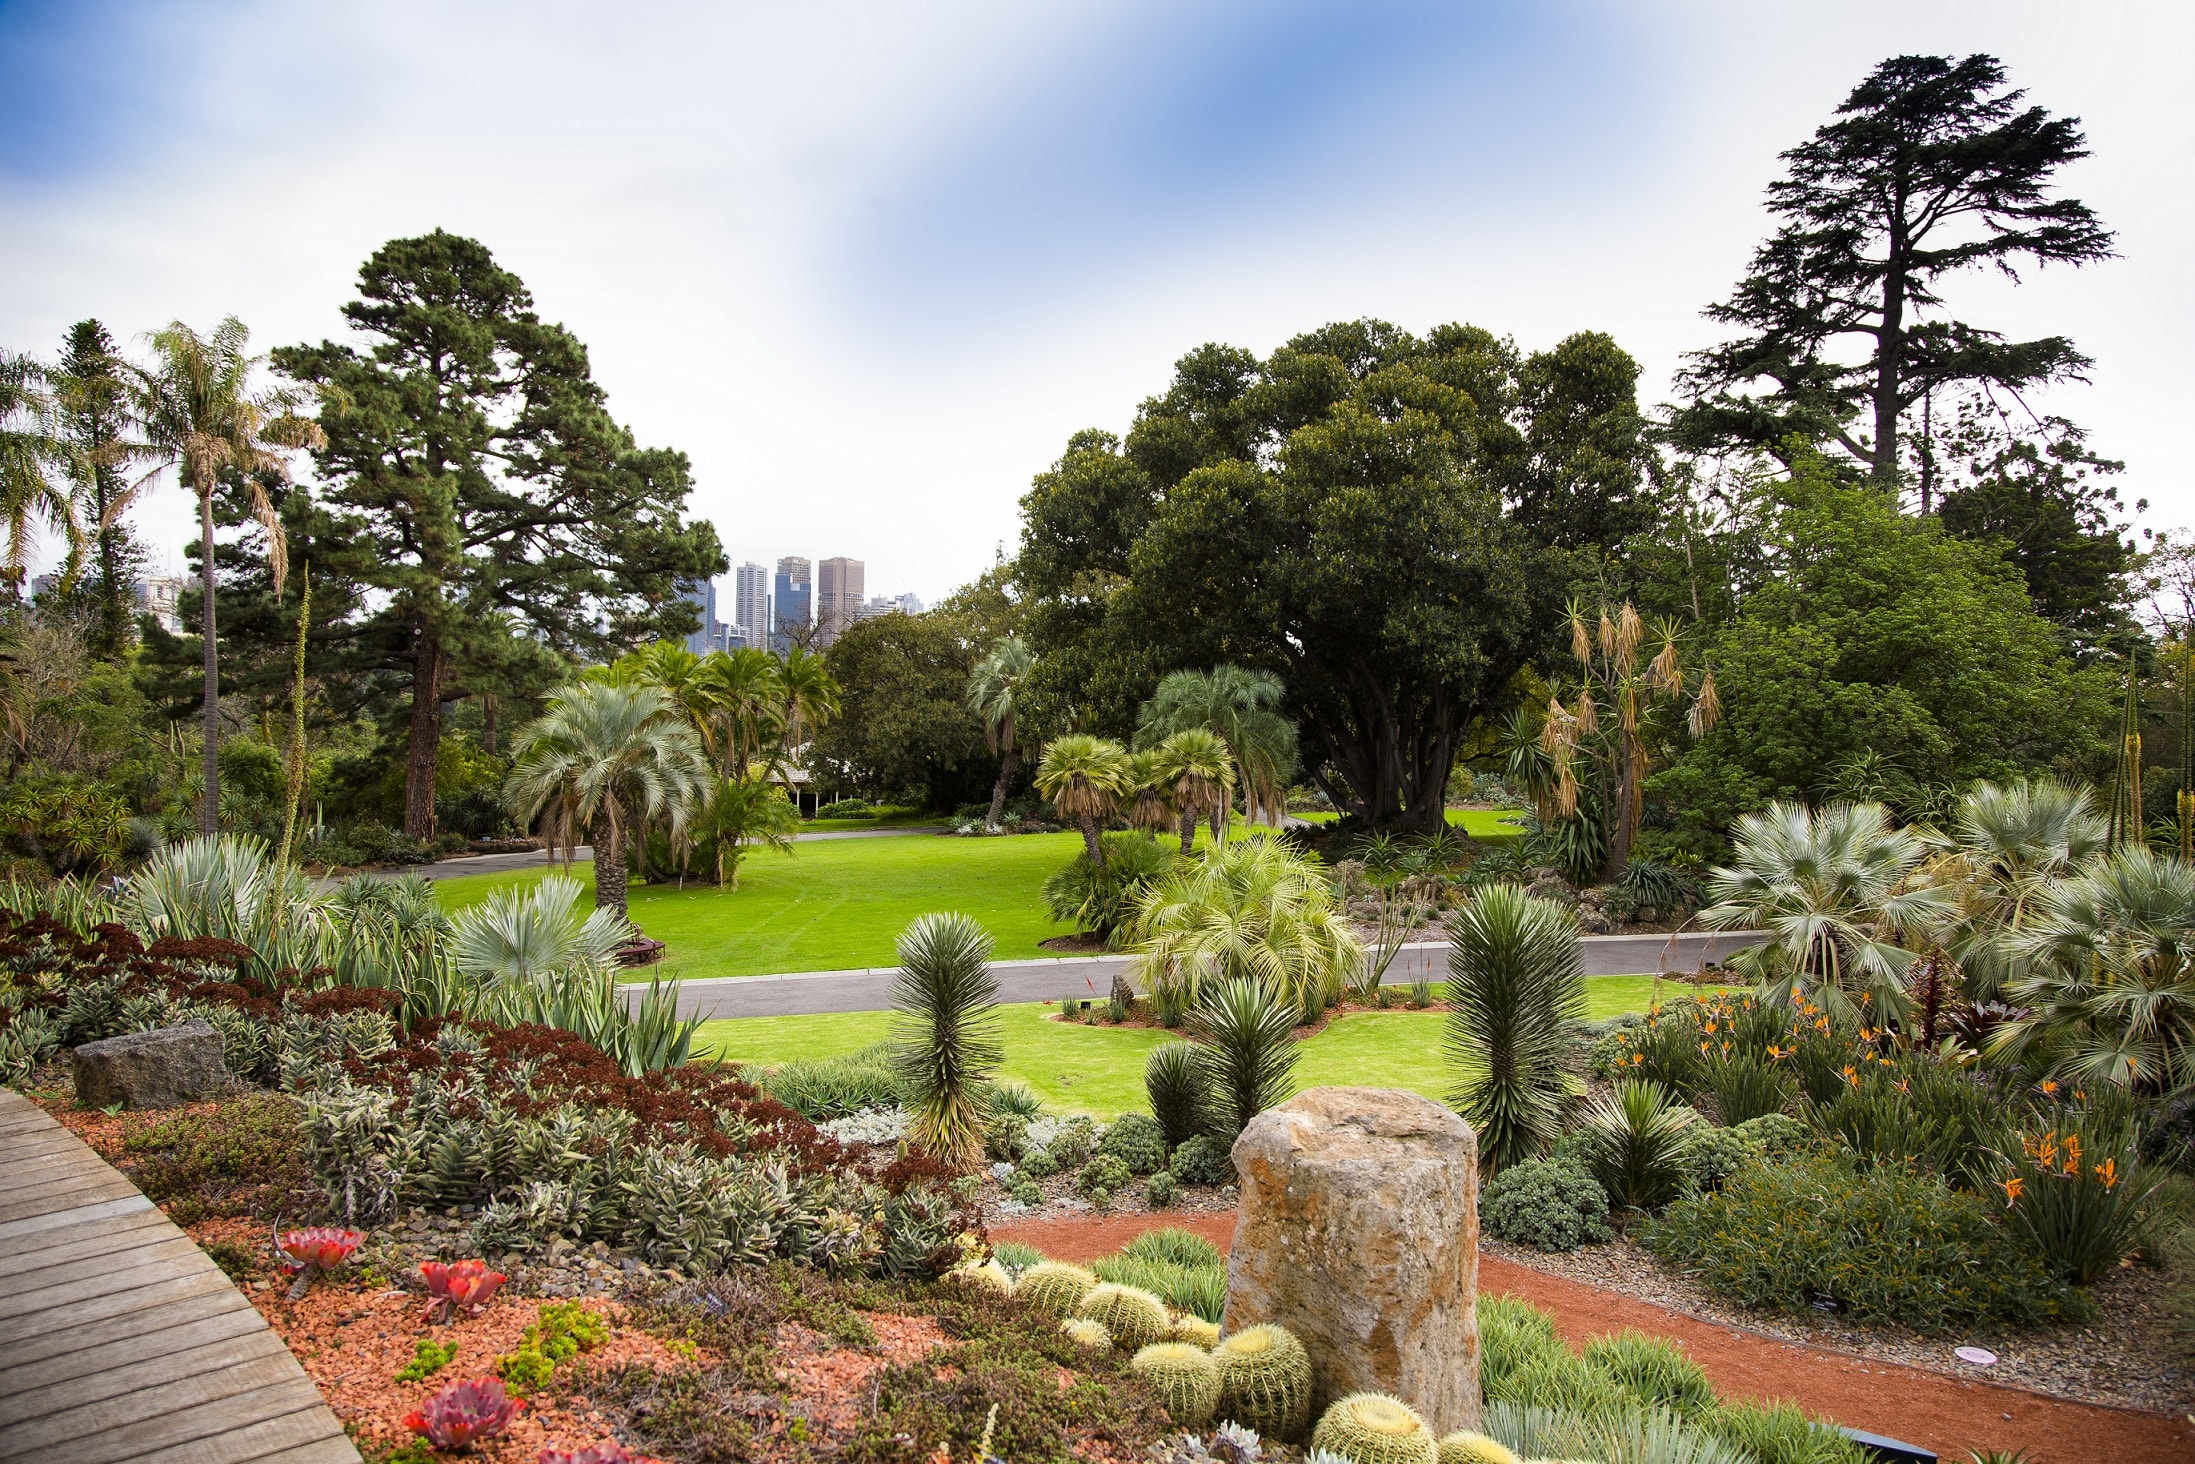 Courtesy of Royal Botanic Gardens Victoria. Photographer: Adrian Vittorio